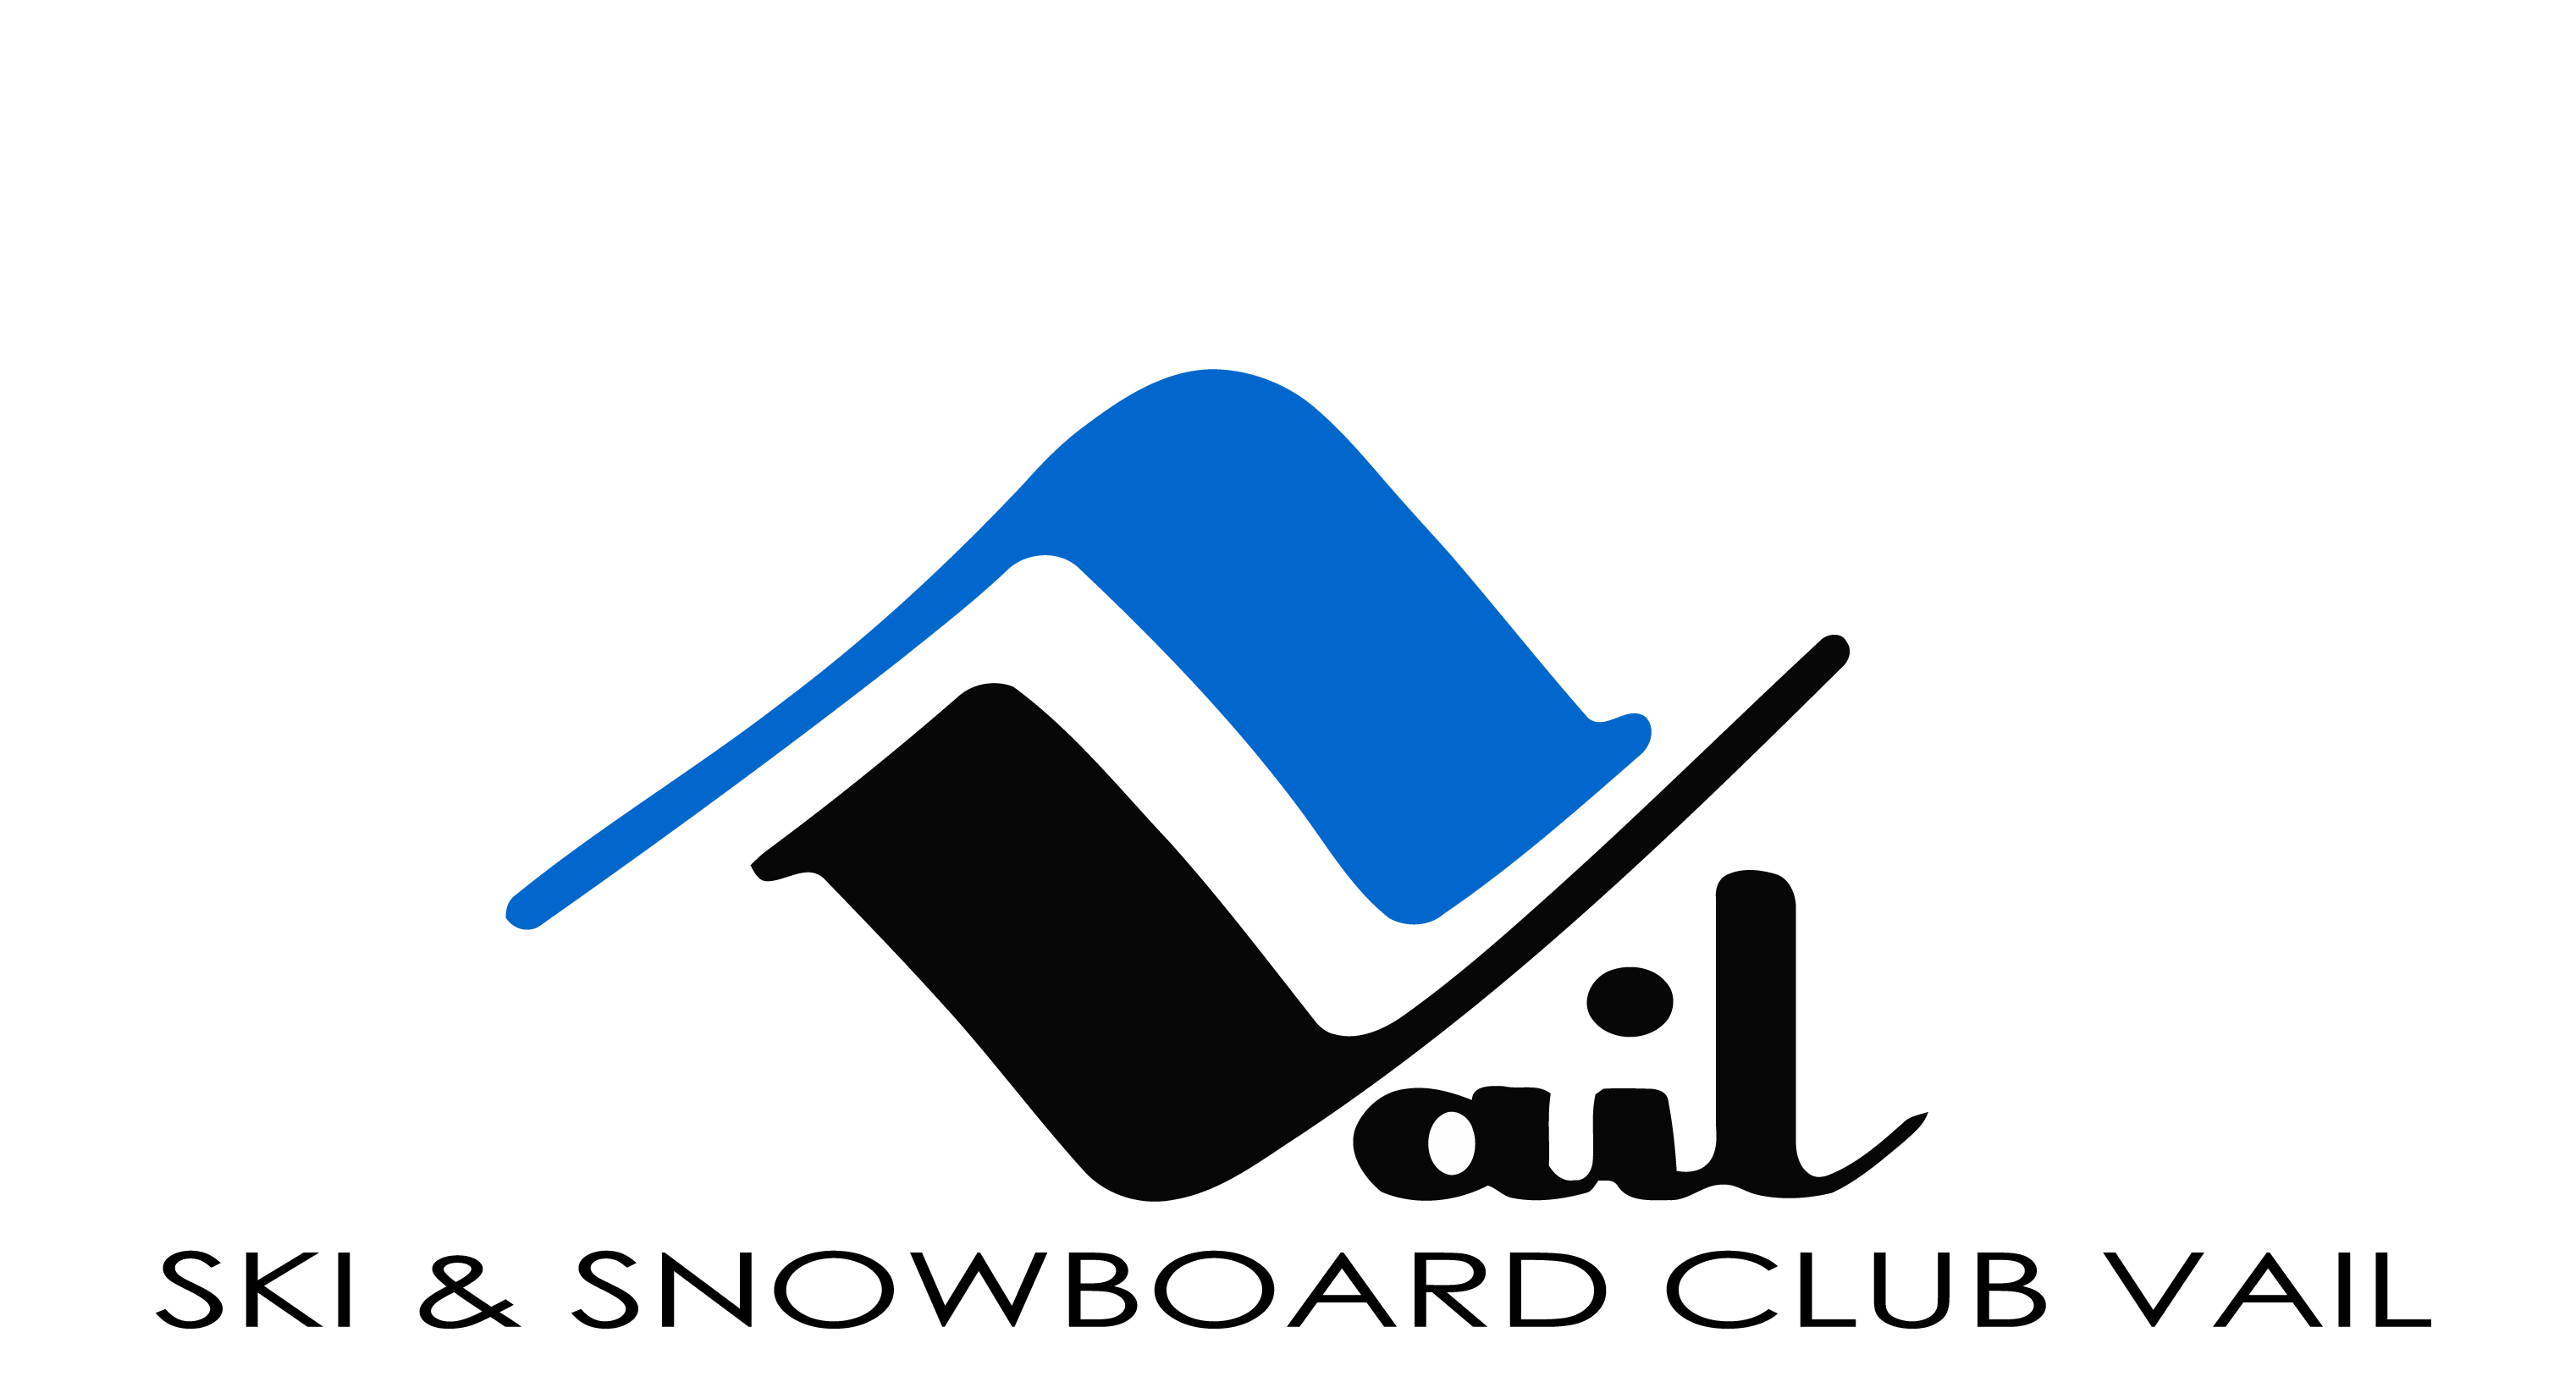 TOBE is proud to partner with Ski Club Vail Mogul Team